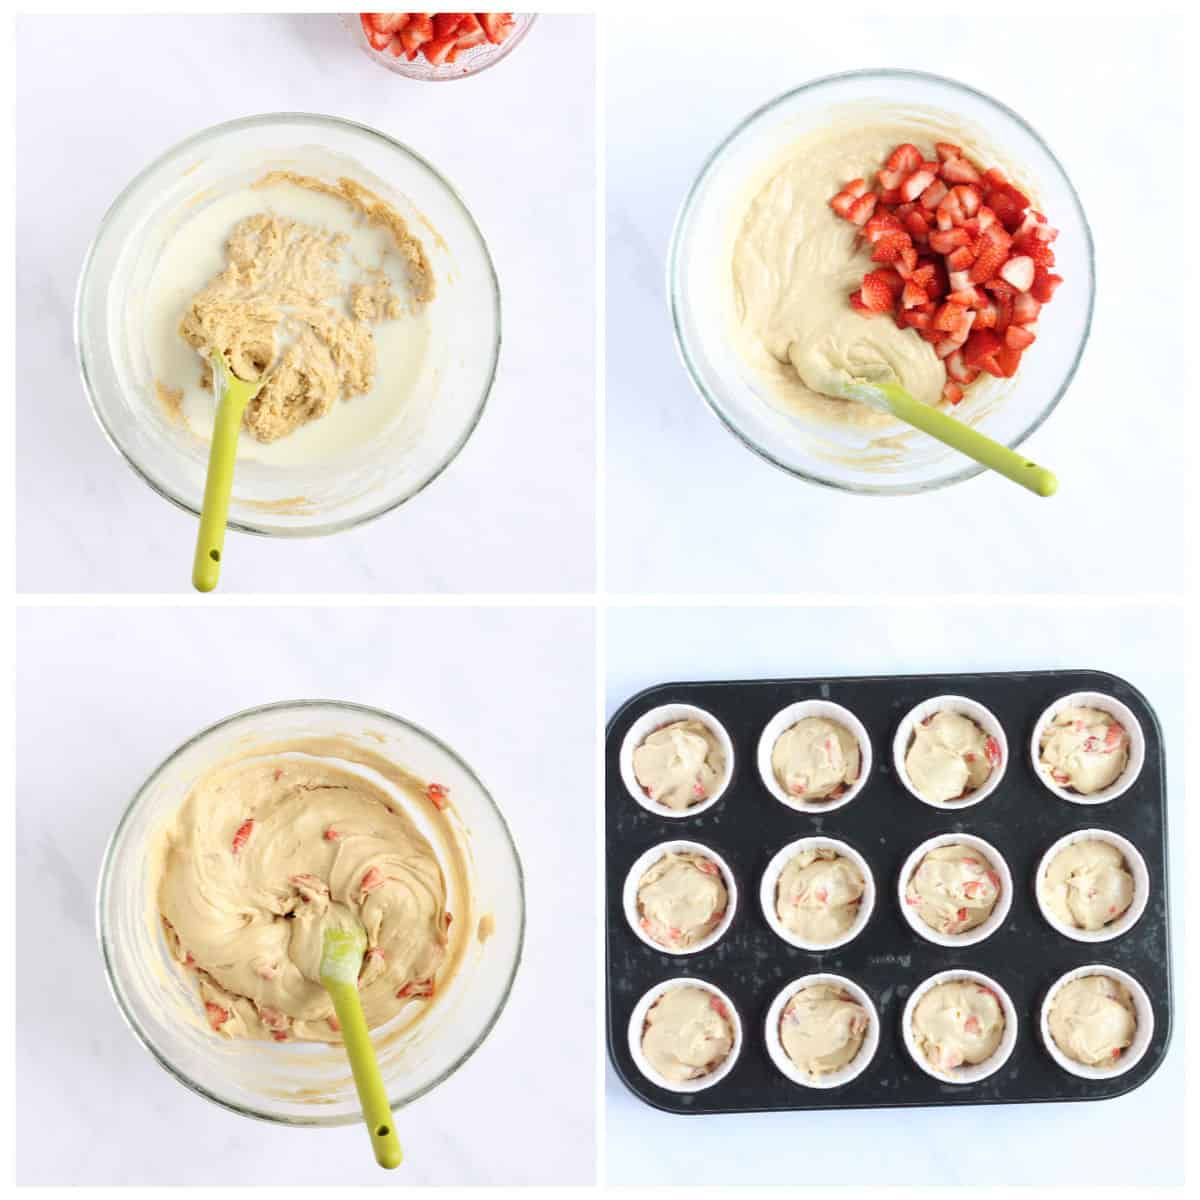 Step by step how to make strawberry muffins (steps 5-8)